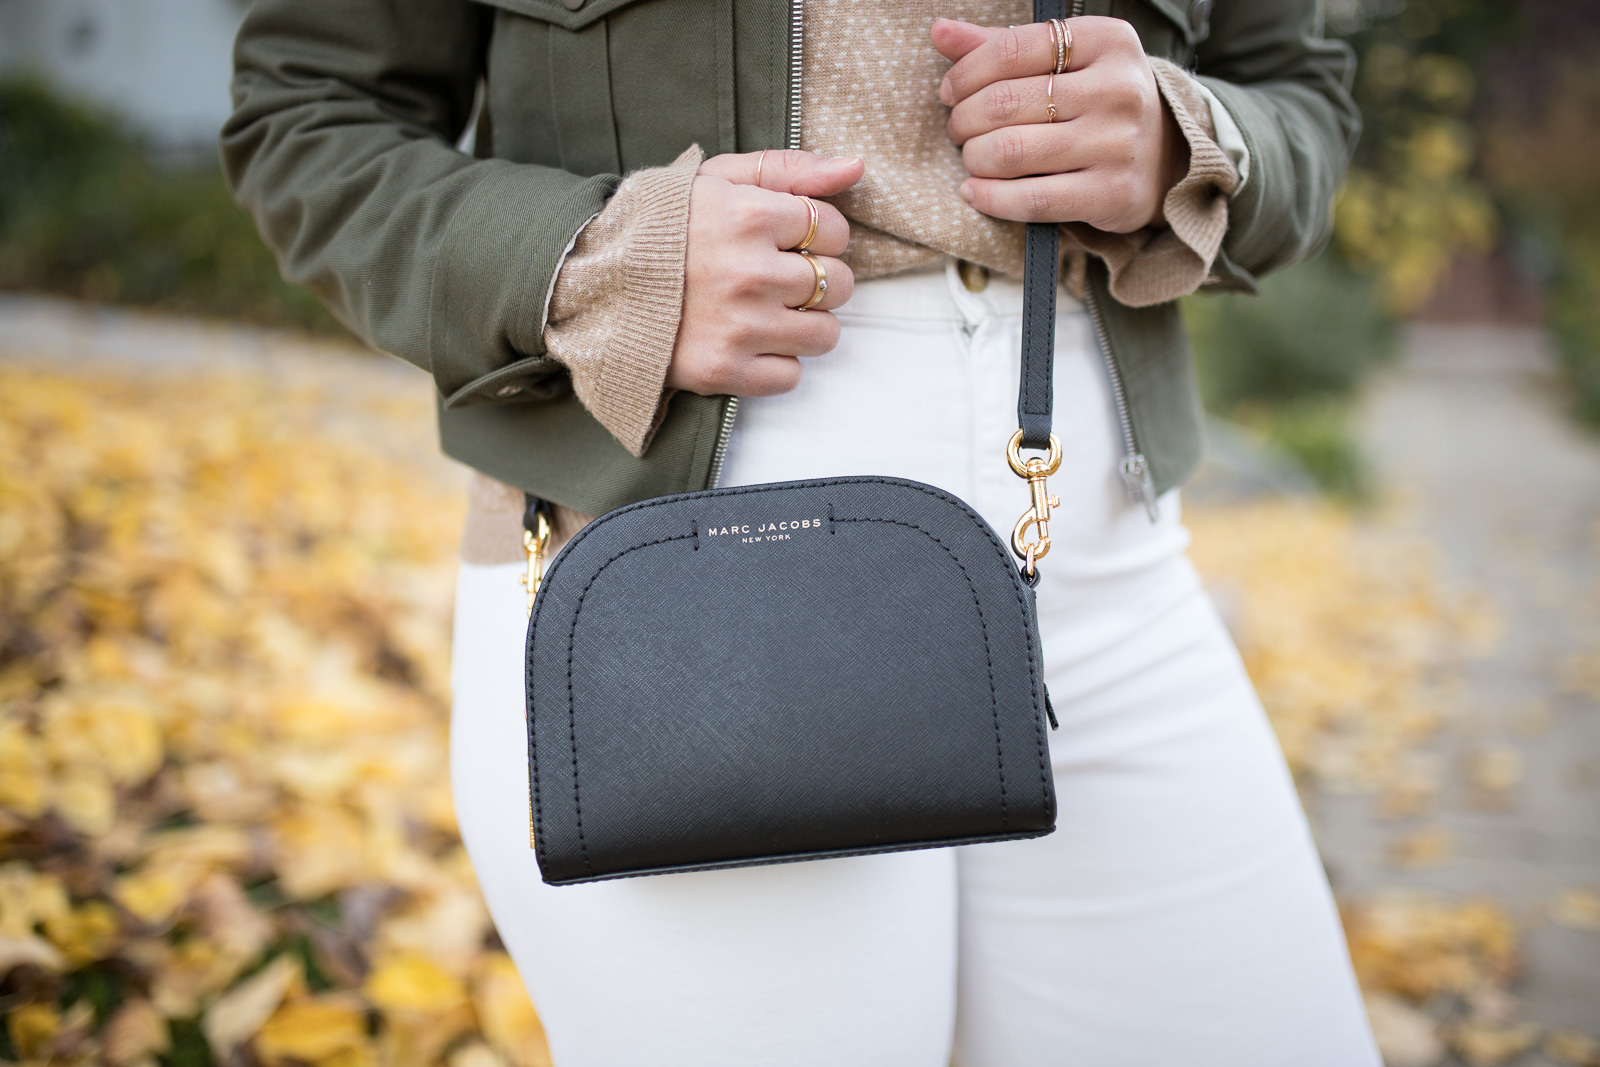 Marc Jacobs cross body bag and stacked rings